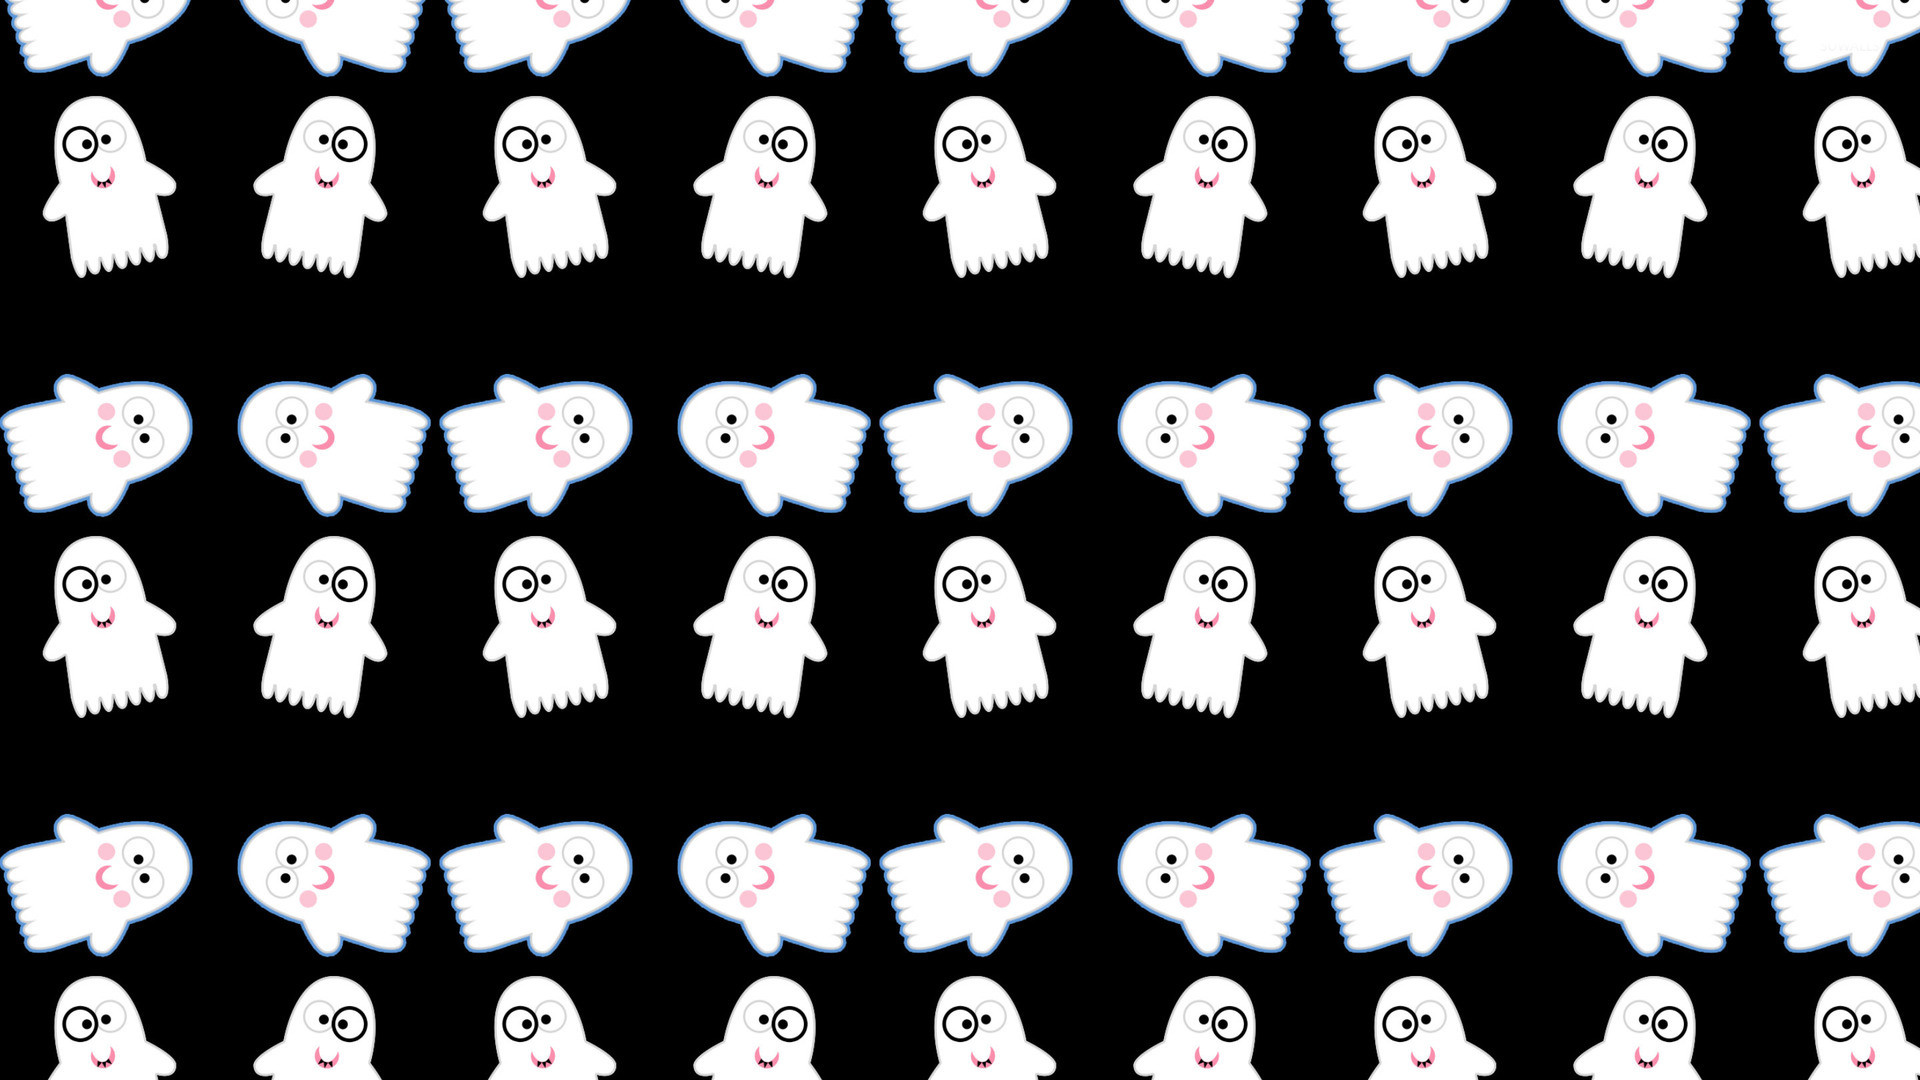 1920x1080 Cute ghost pattern wallpaper - Holiday wallpapers - #24315